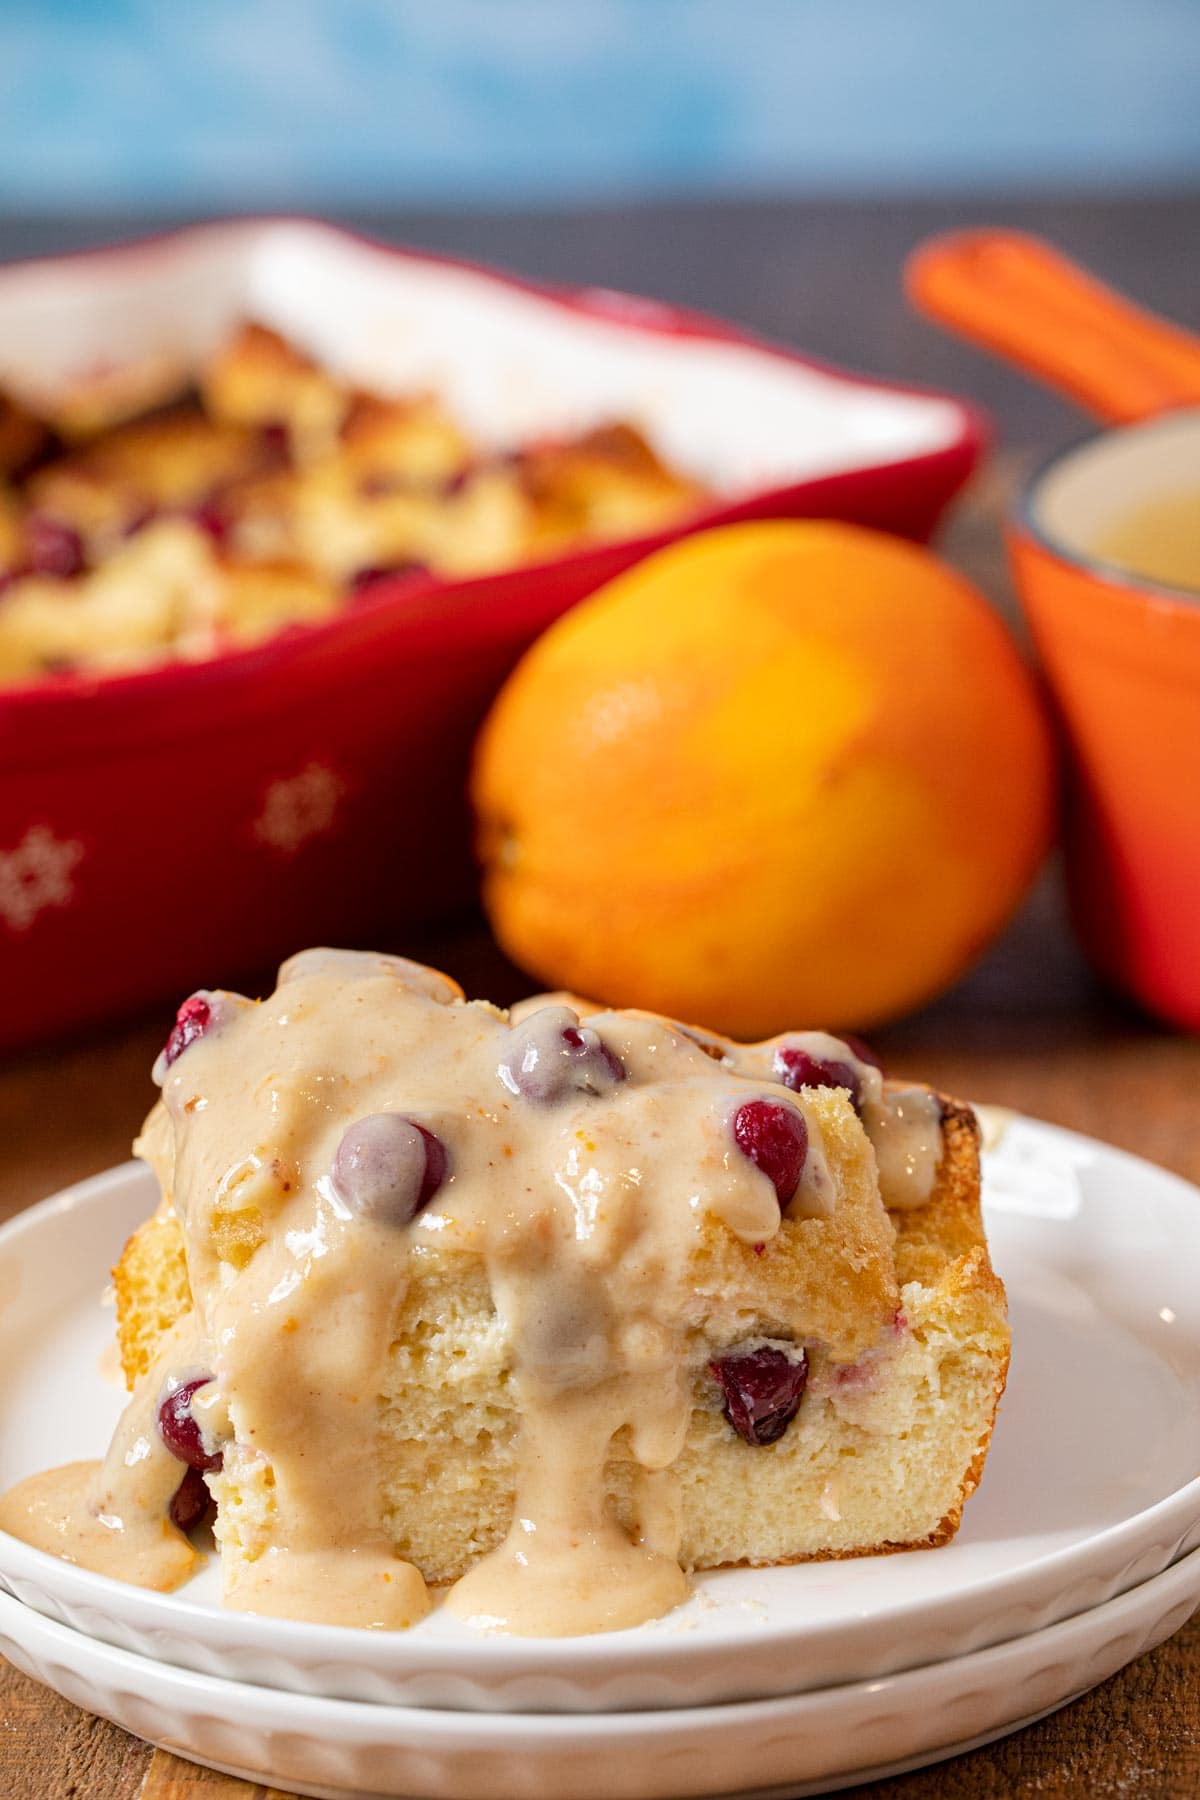 Cranberry Bread Pudding serving on plate with orange vanilla sauce